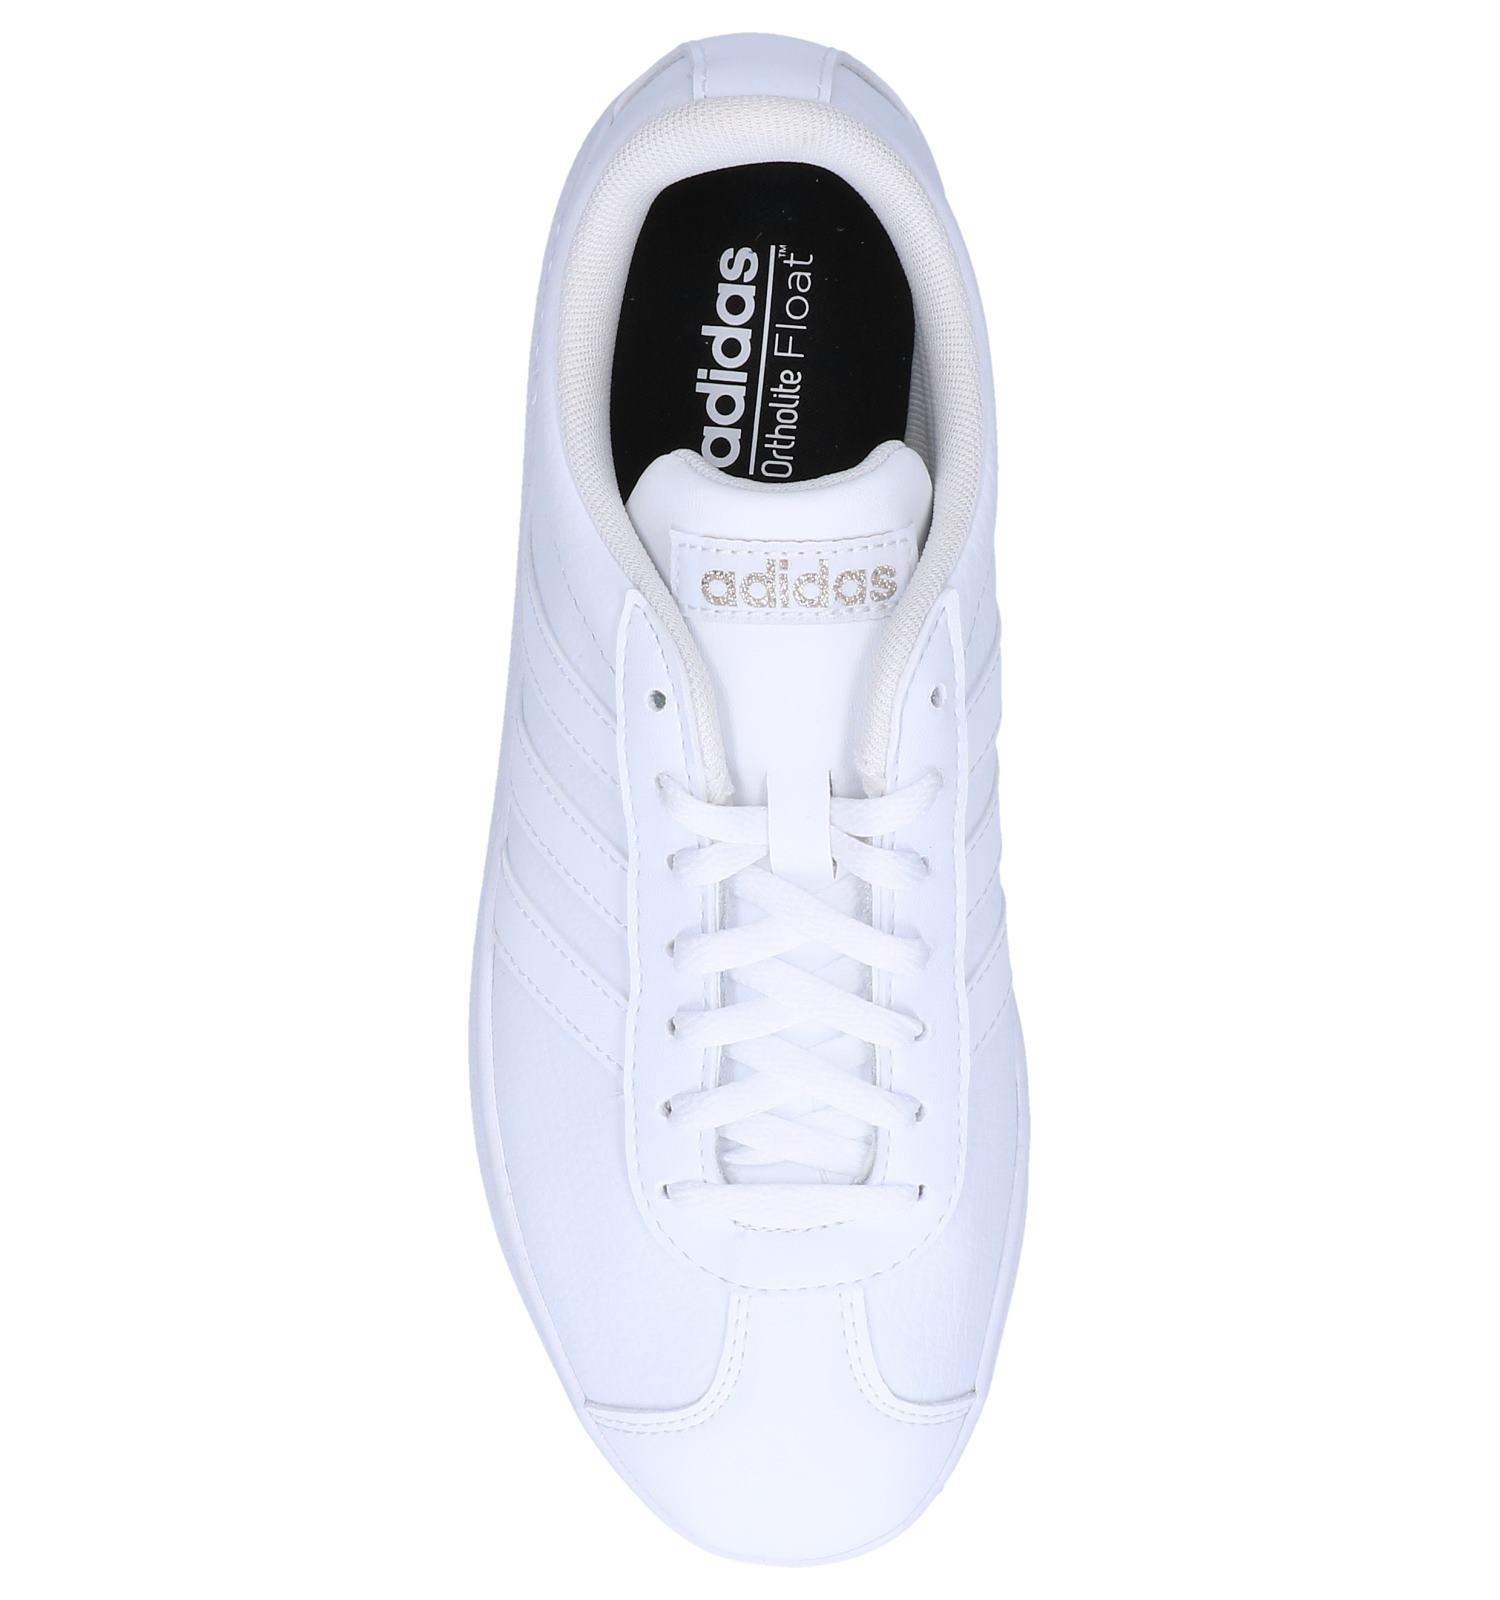 adidas VL Court 2.0 Witte Sneakers | TORFS.BE | Gratis ...